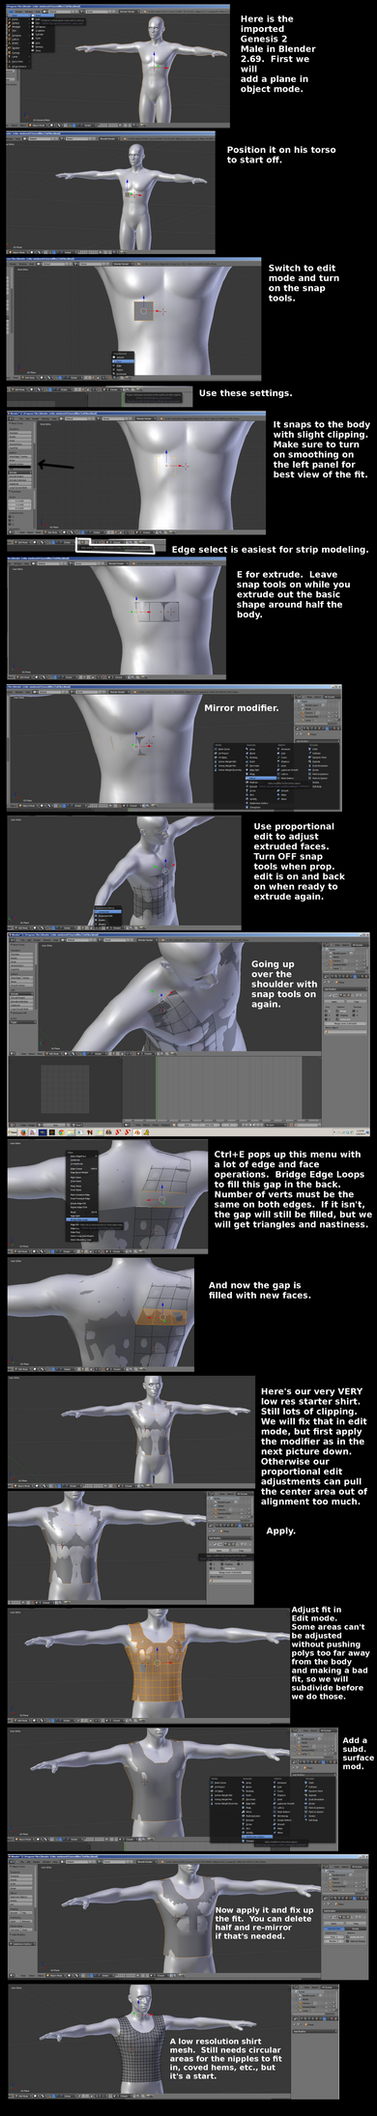 Tutorial g1g2g3g8 clothing in blender 1 by sickleyield on deviantart tutorial g1g2g3g8 clothing in blender 1 by sickleyield on deviantart baditri Image collections